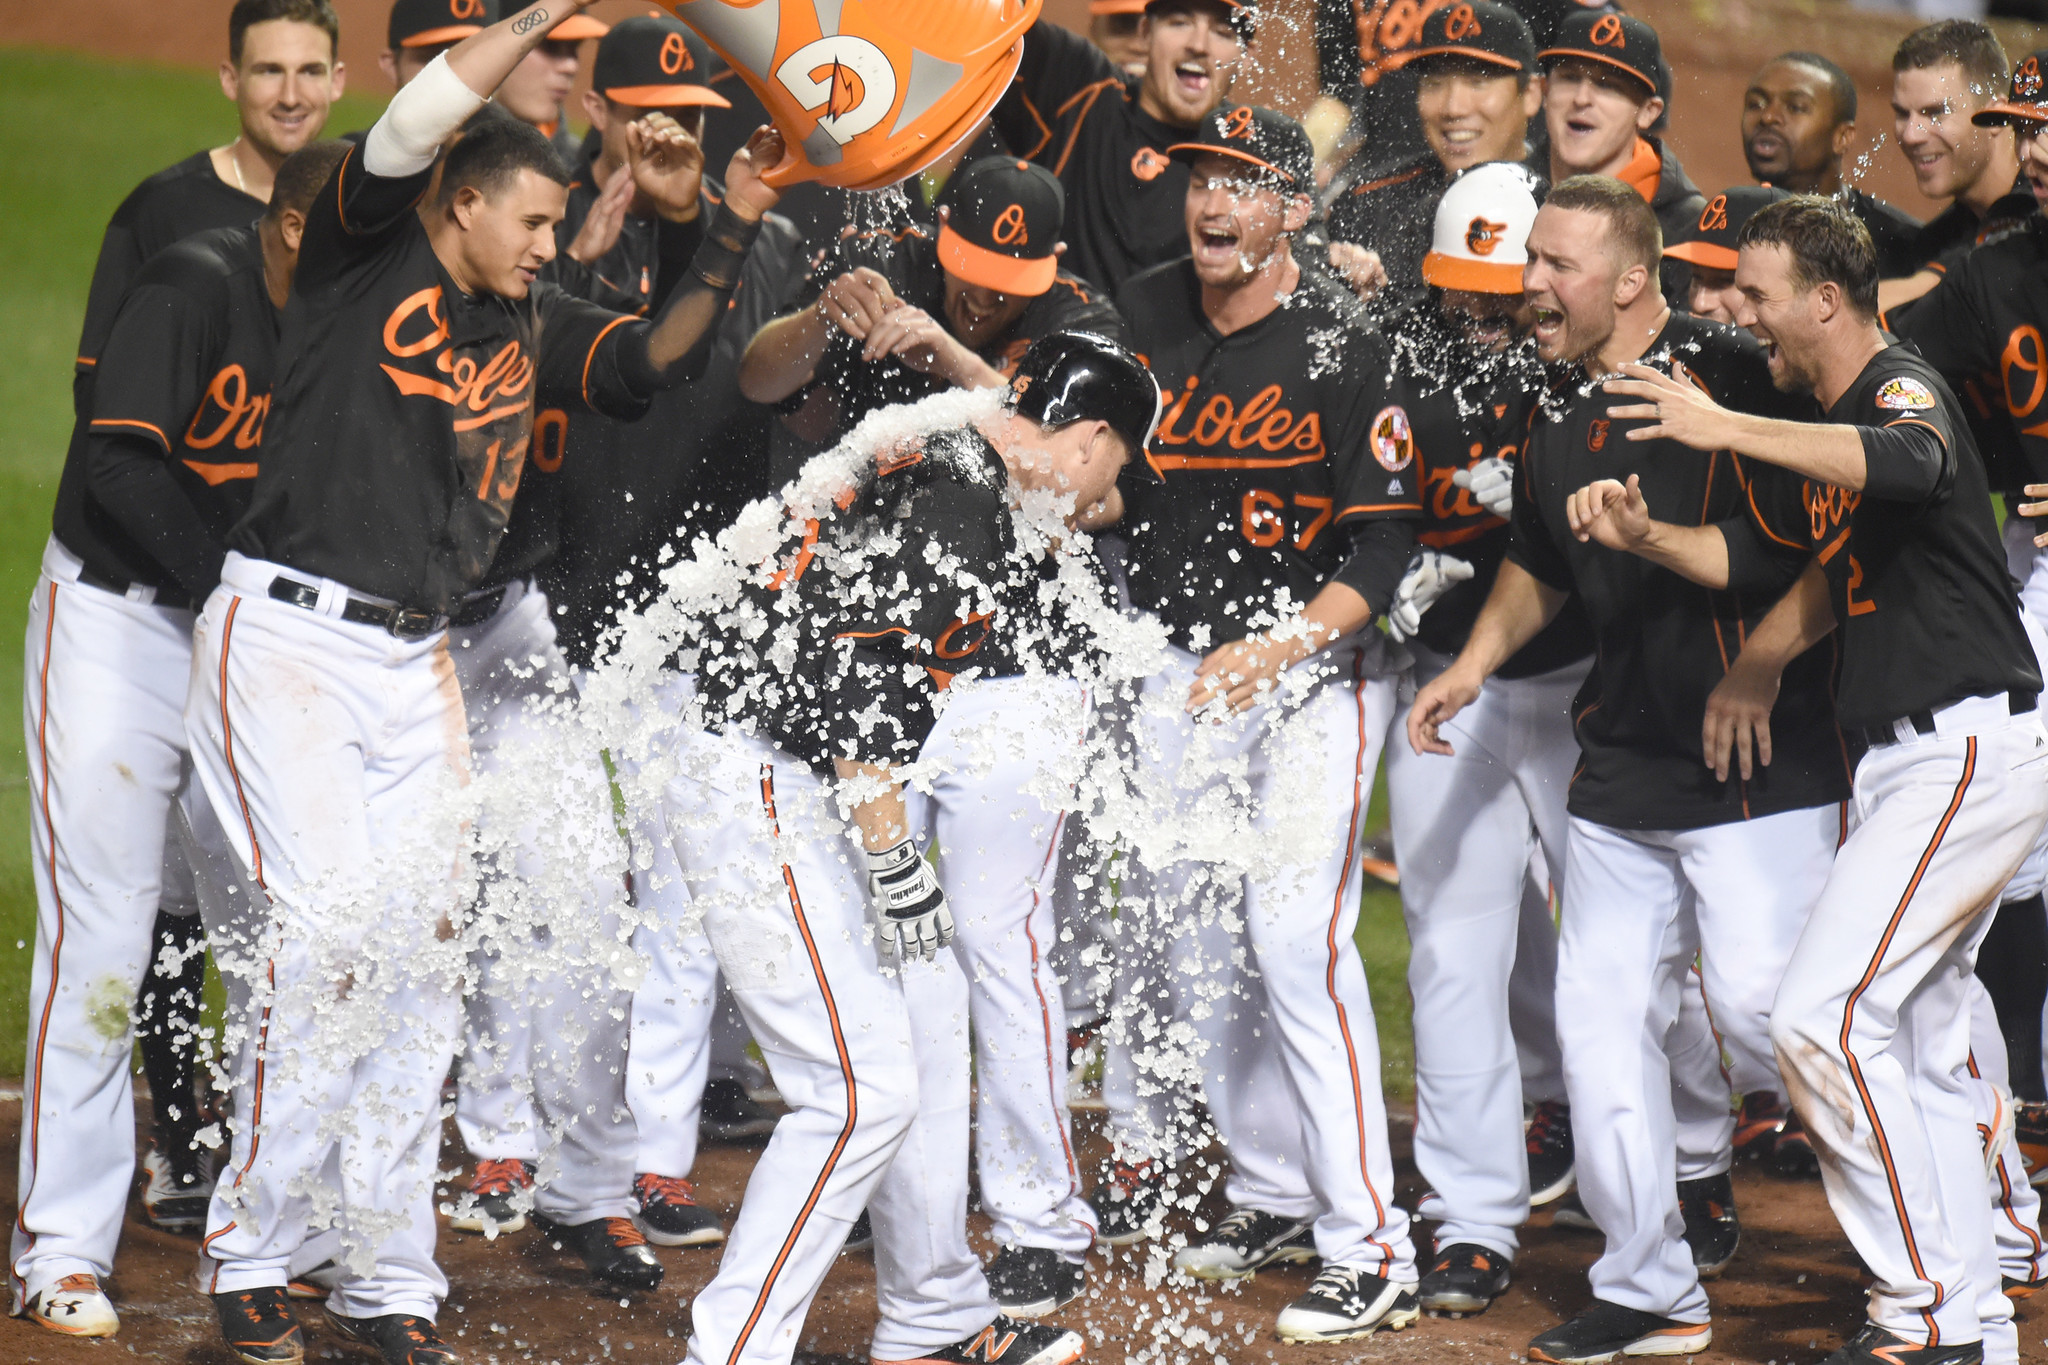 Bal-orioles-offense-awakens-at-right-moment-to-beat-diamondbacks-keep-pace-in-playoff-race-20160923